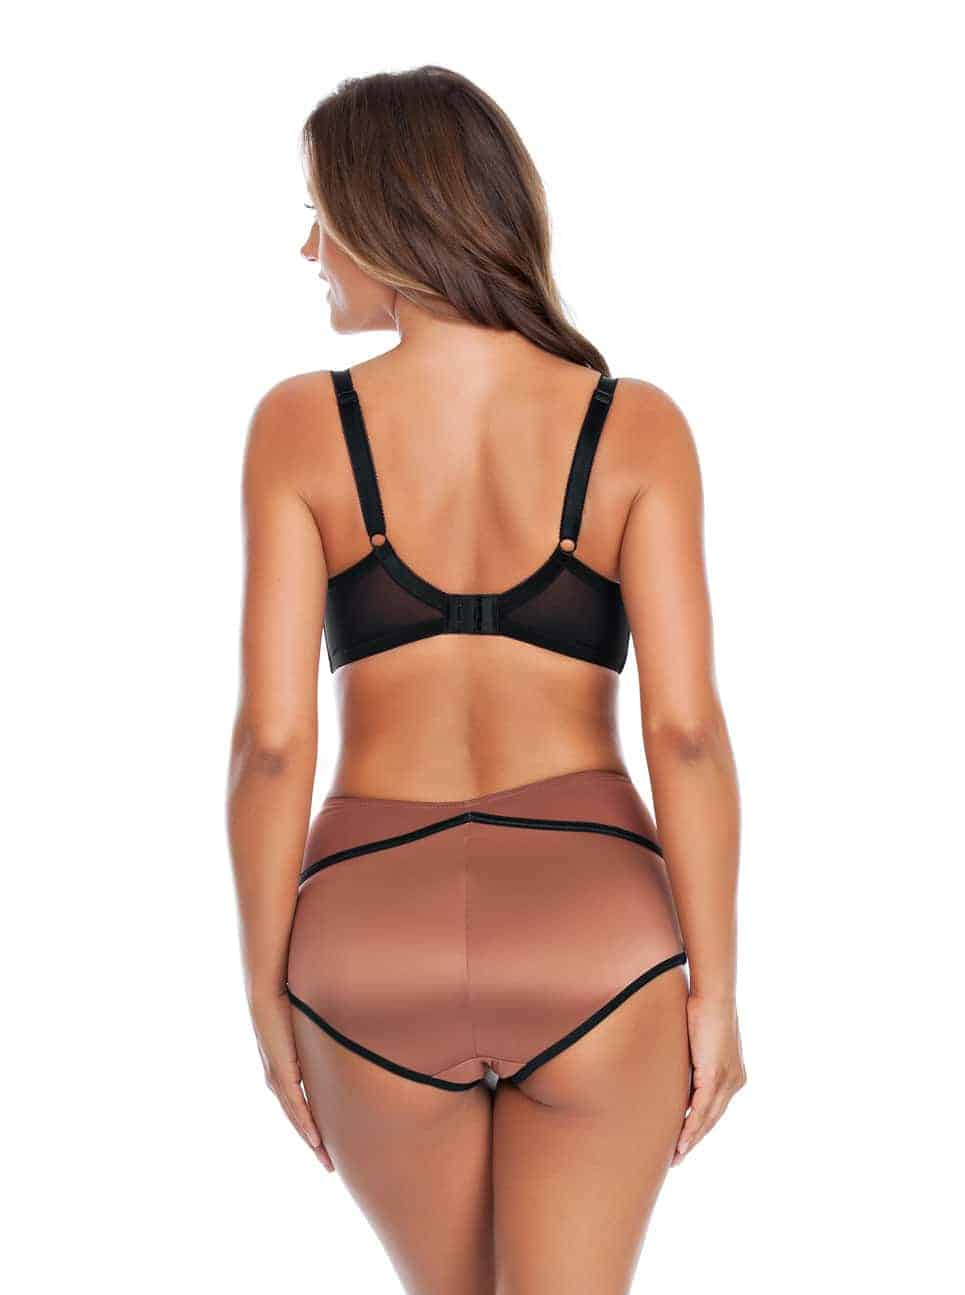 Charlotte PaddedBra6901 HighwaistBrief6917 Bronze Back - Charlotte Highwaist Brief - Bronze - 6917